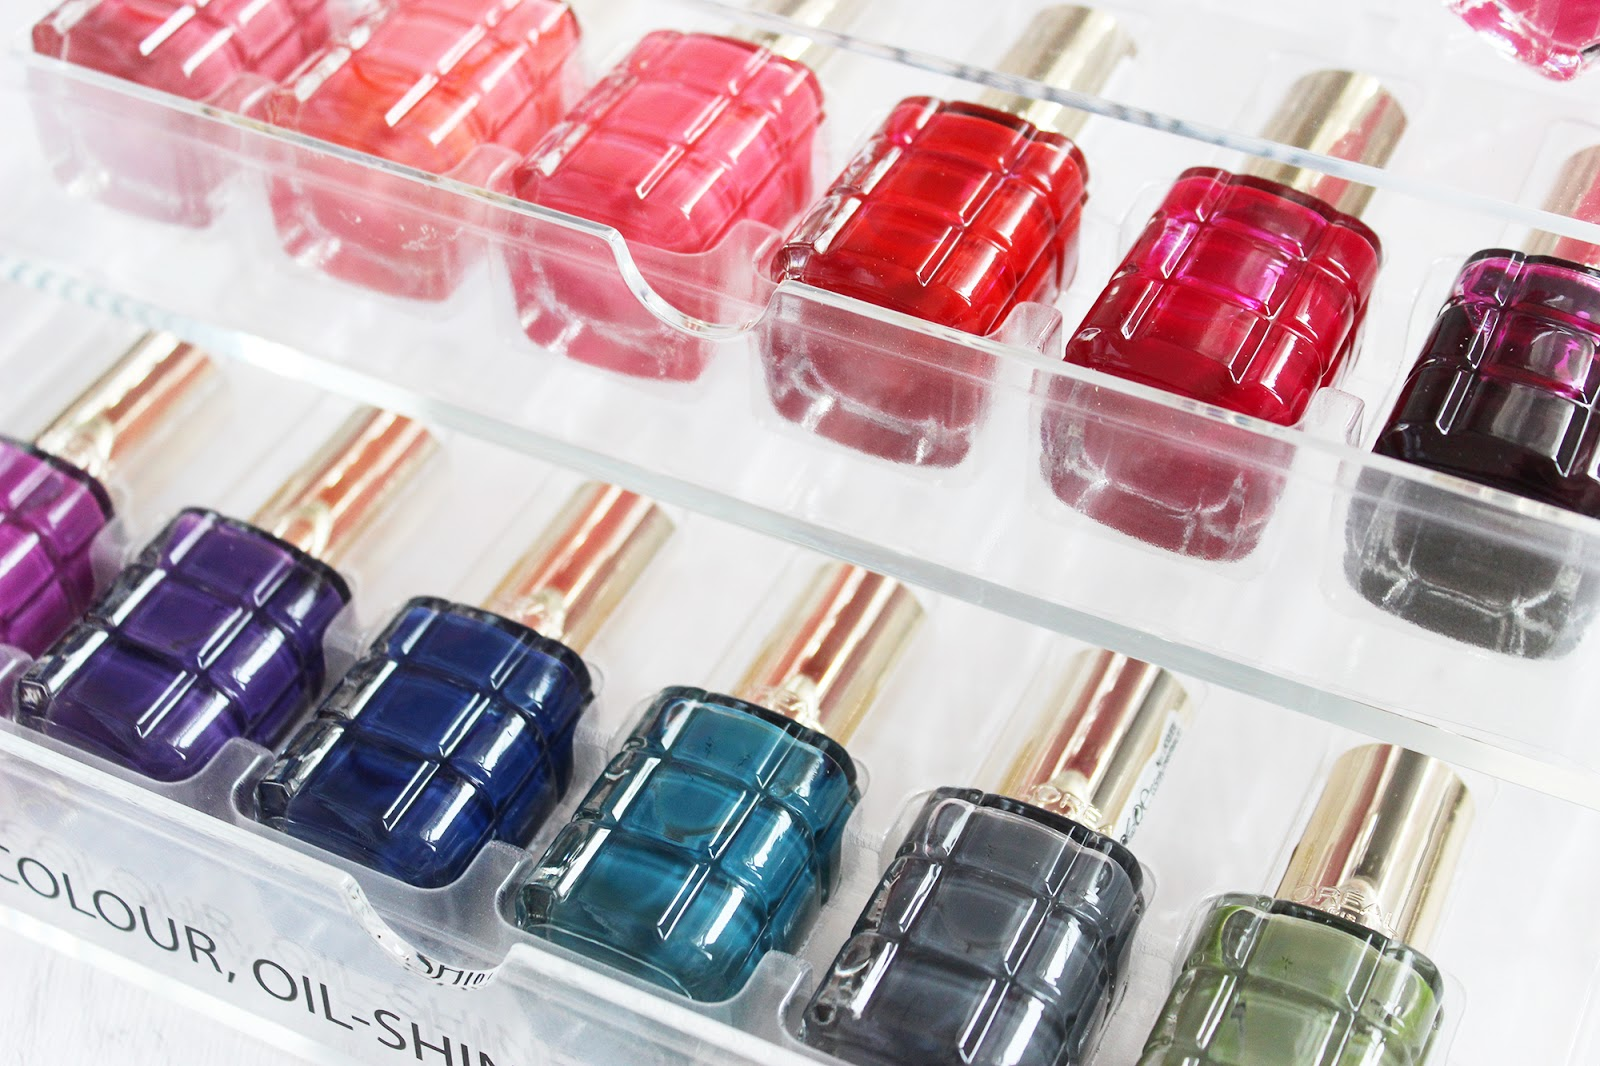 L'Oreal Colour Riche Le Vernis a L'Huile nail polishes | Tales of ...